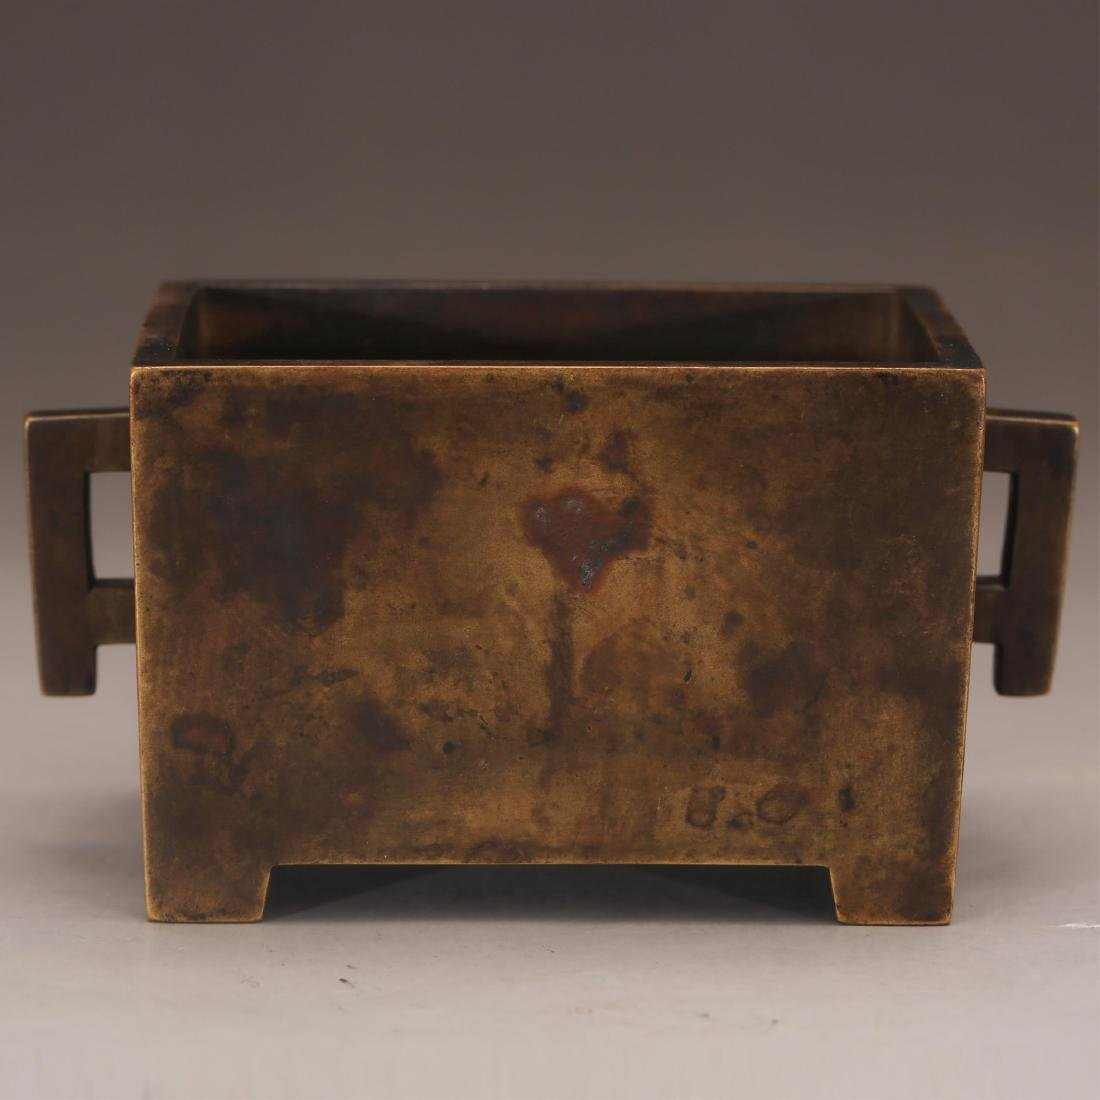 CHINESE BRONZE CENSER, QING OR EARLIER